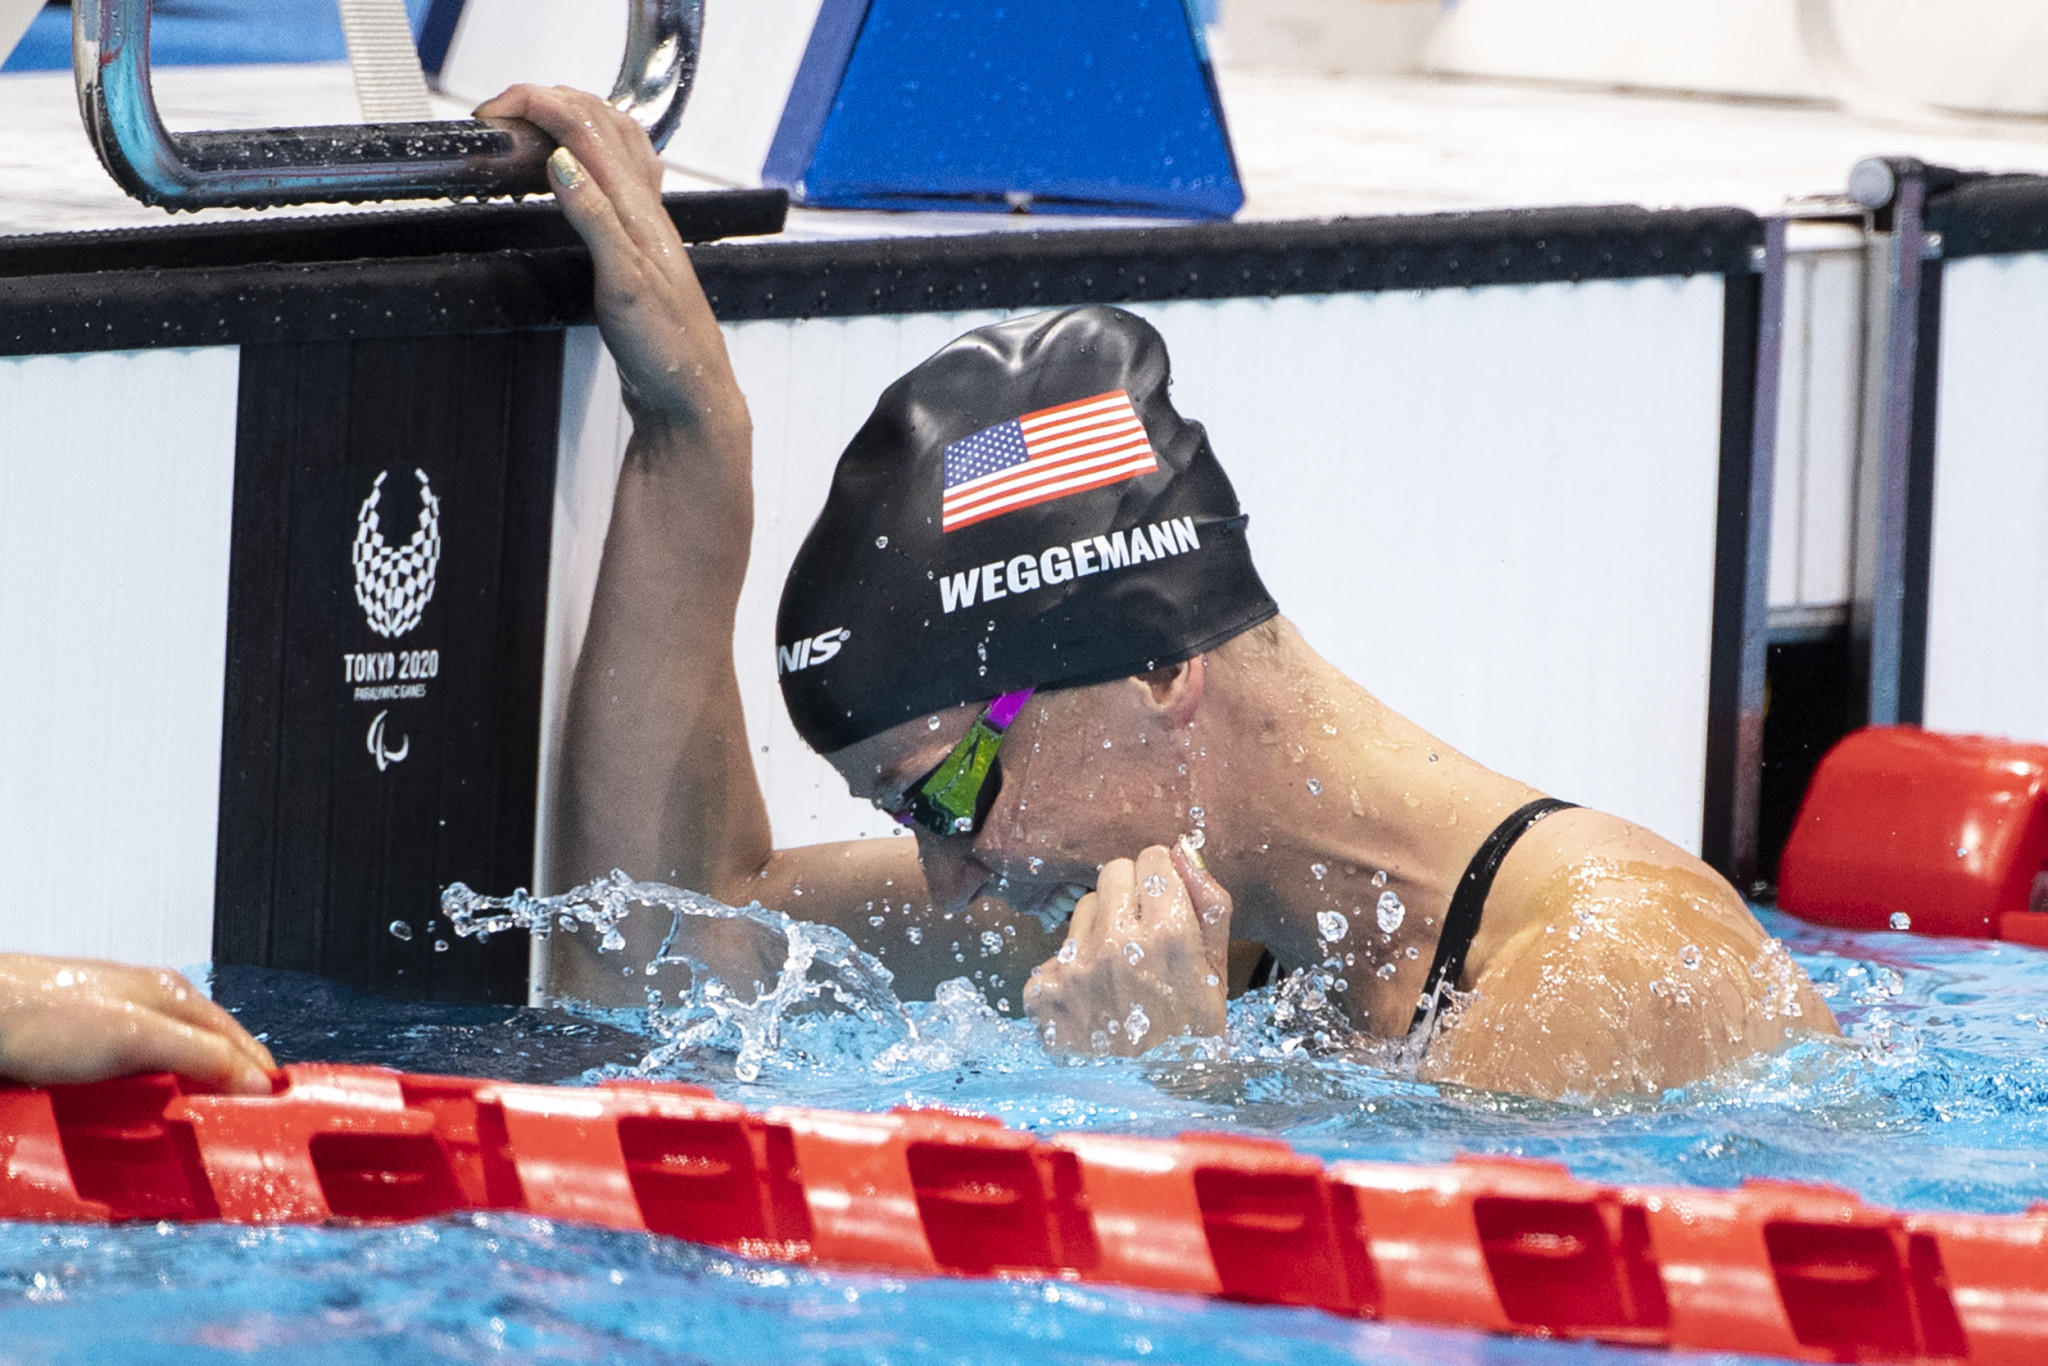 Mallory Weggemann won her second gold medal at the Tokyo 2020 Paralympic Games ©Getty Images